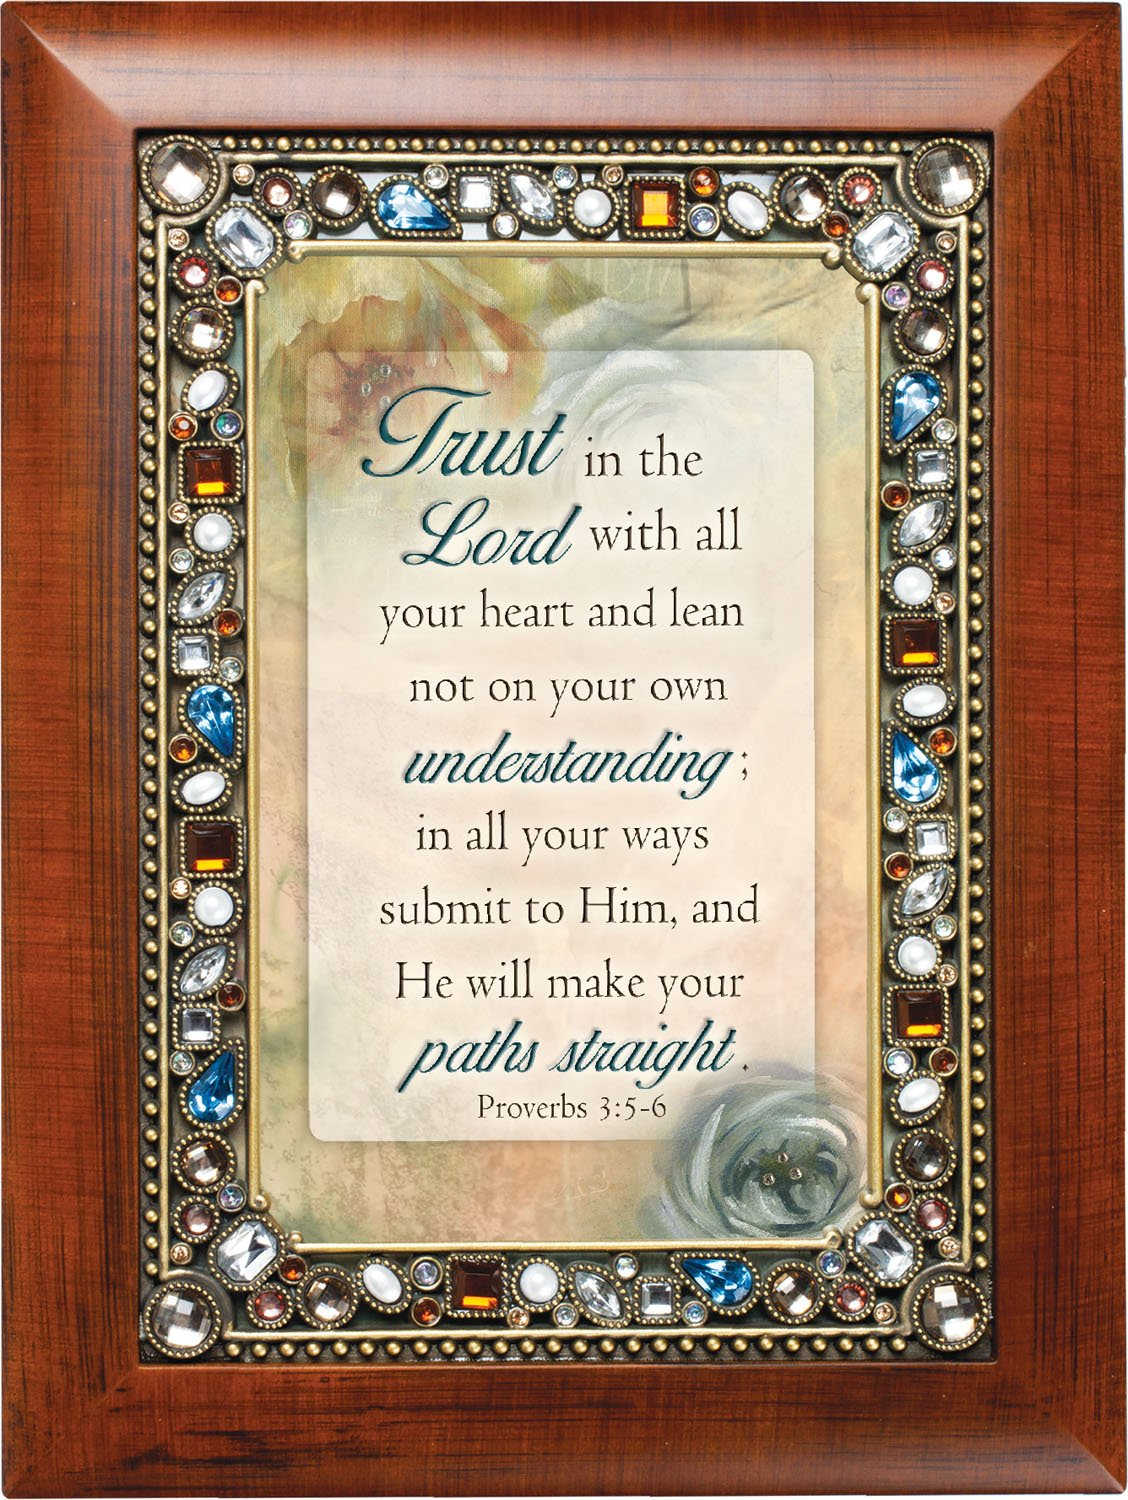 Trust in the Lord Proverbs 3 5-6 Wood Finish Jeweled 4×6 Framed Art Plaque